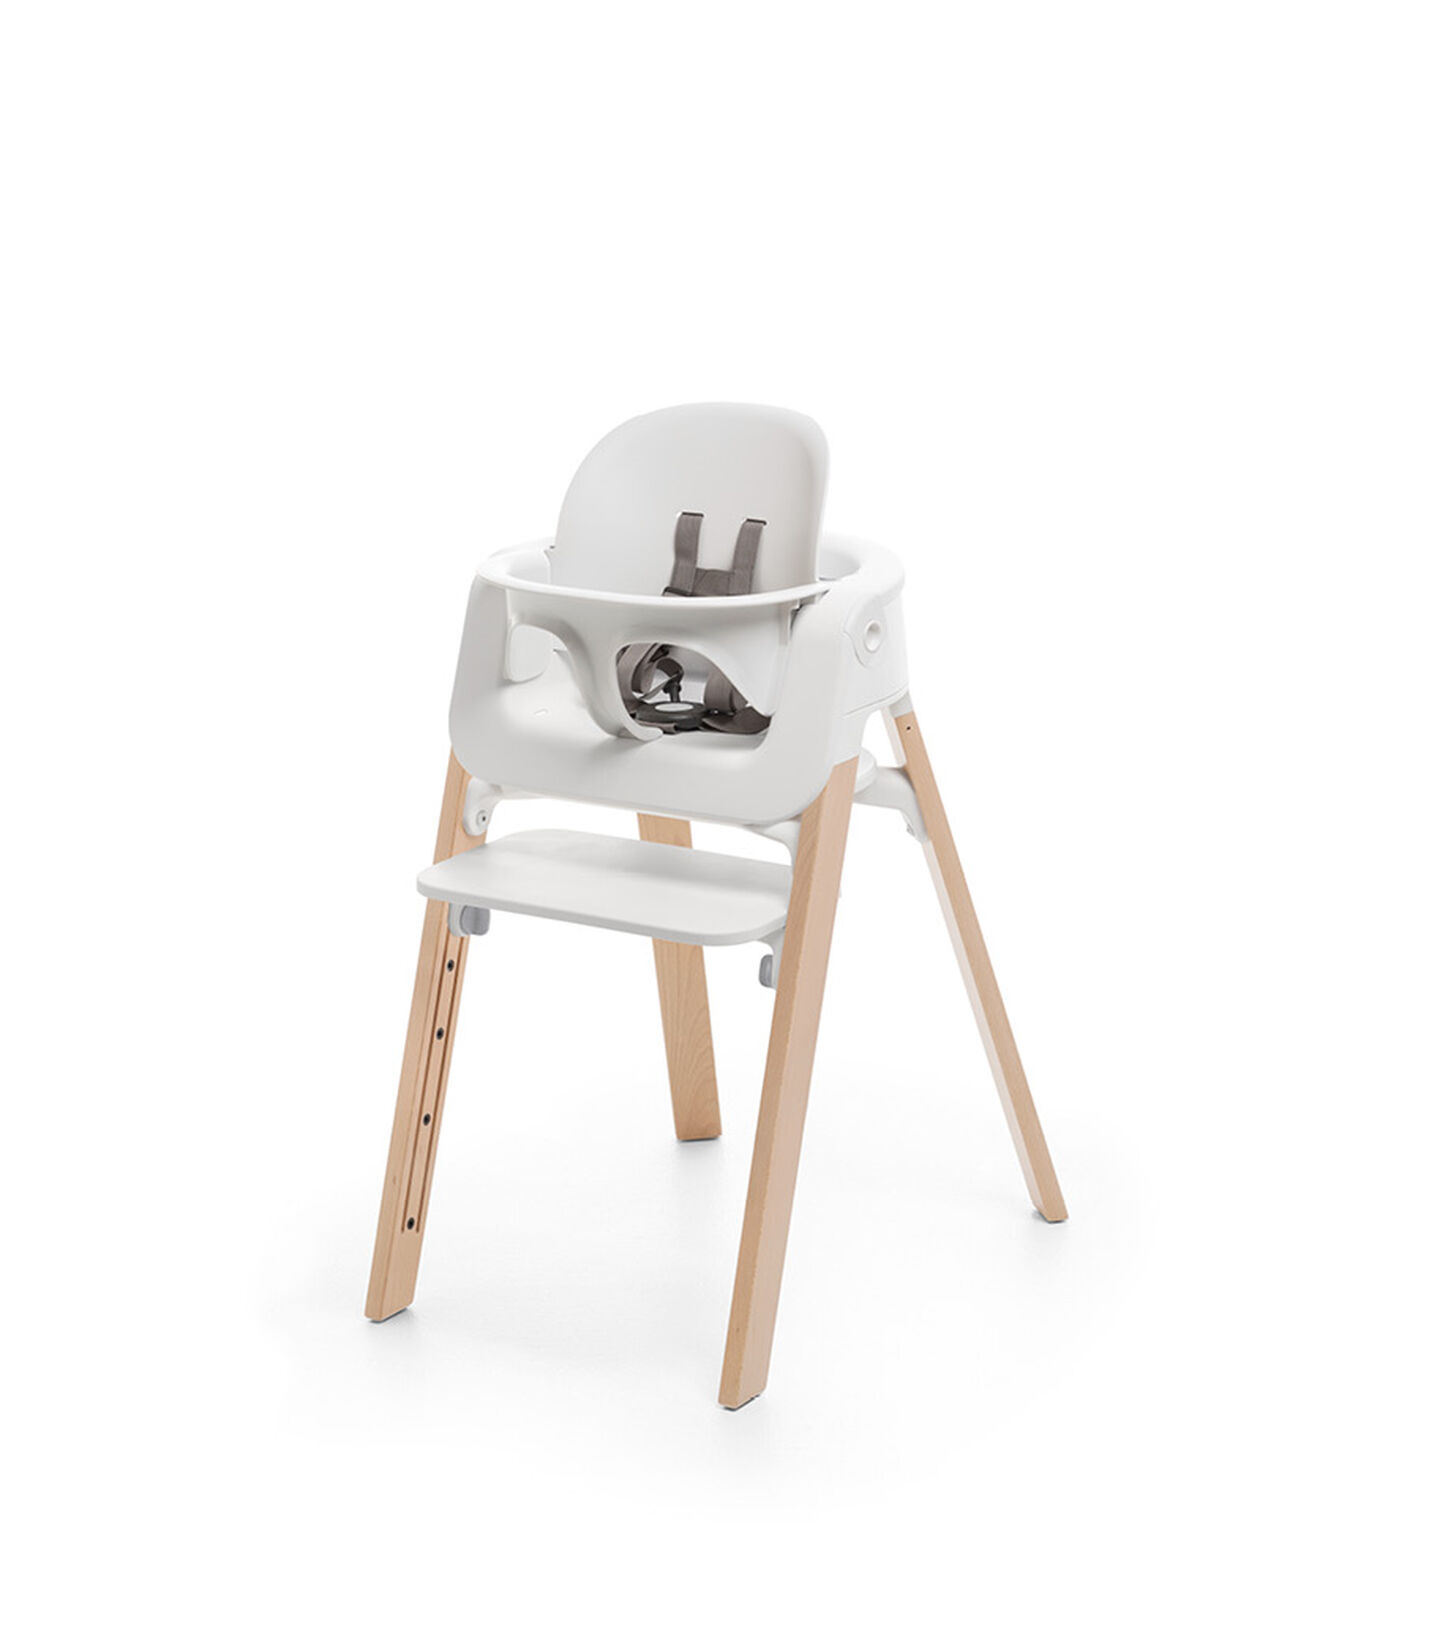 Stokke® Steps™ High Chair Natural Legs with White, White Seat BS-Natural Legs, mainview view 2